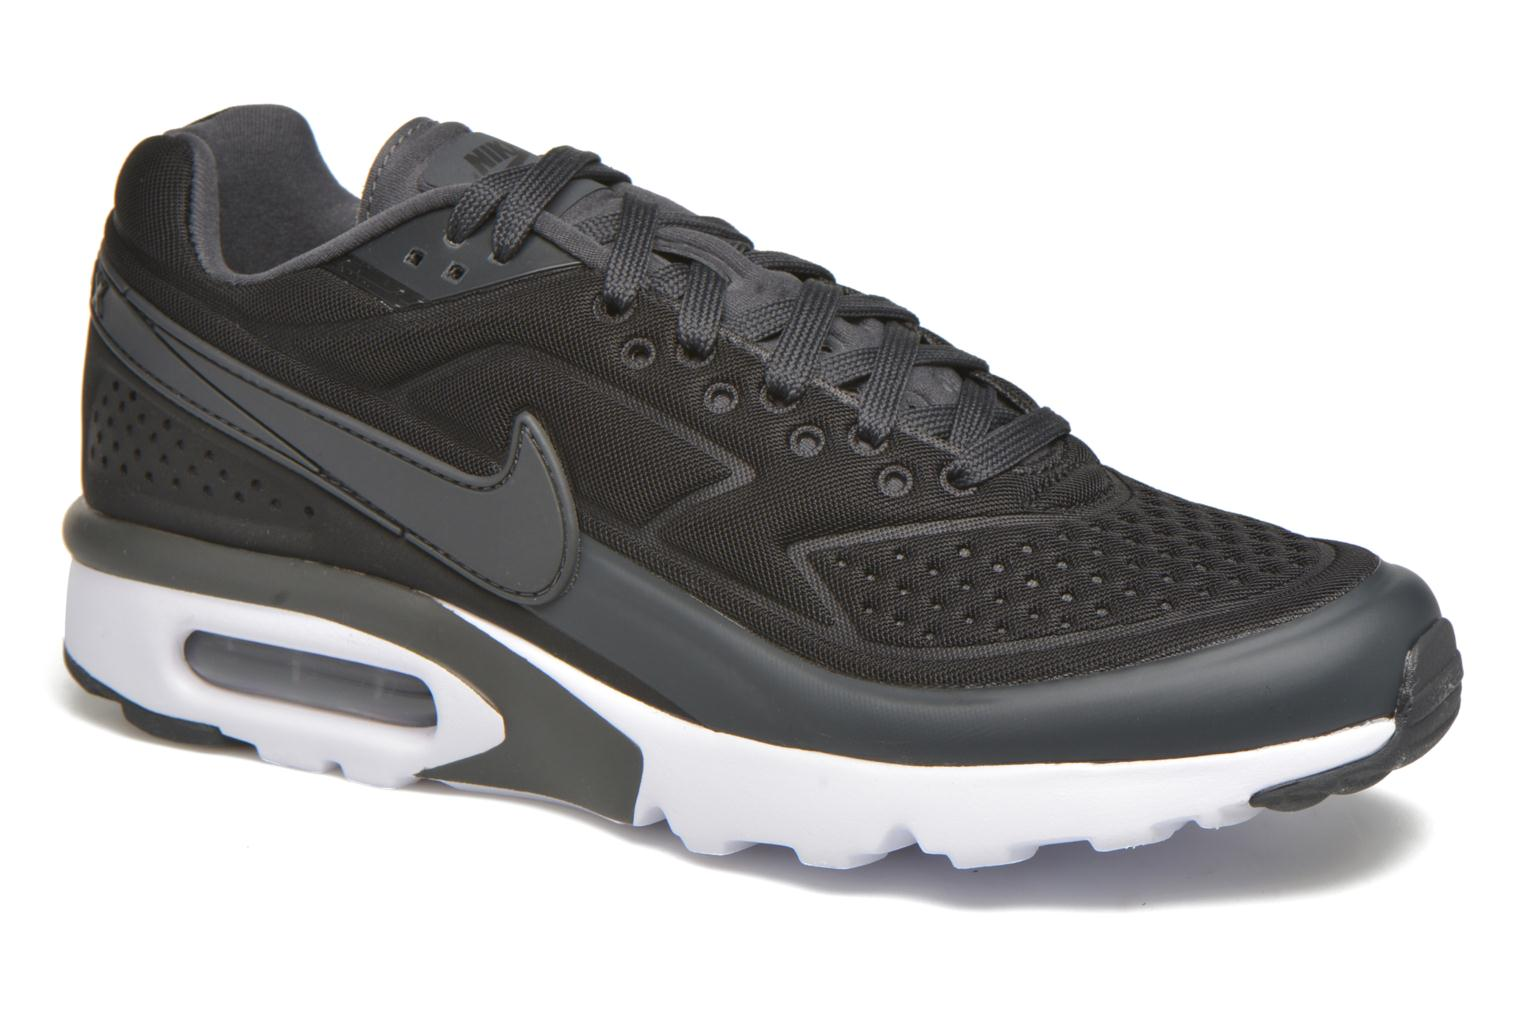 Nike Air Max Bw Ultra Se Black/Anthracite-White